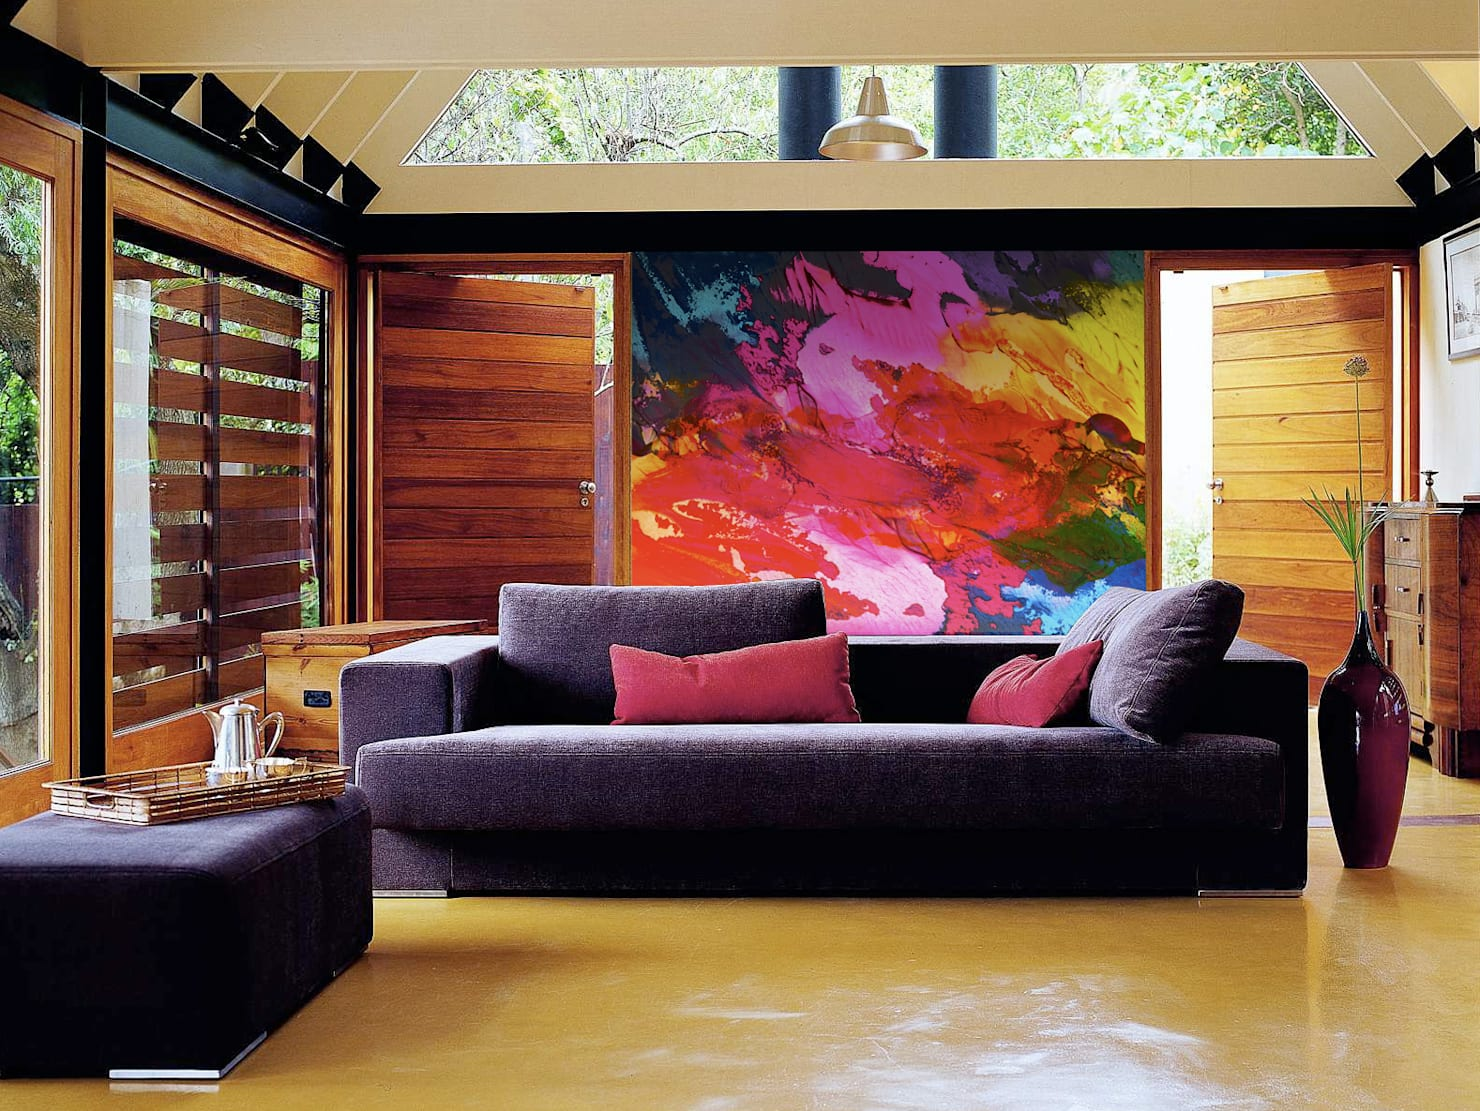 Perk up your home with these colorful ideas